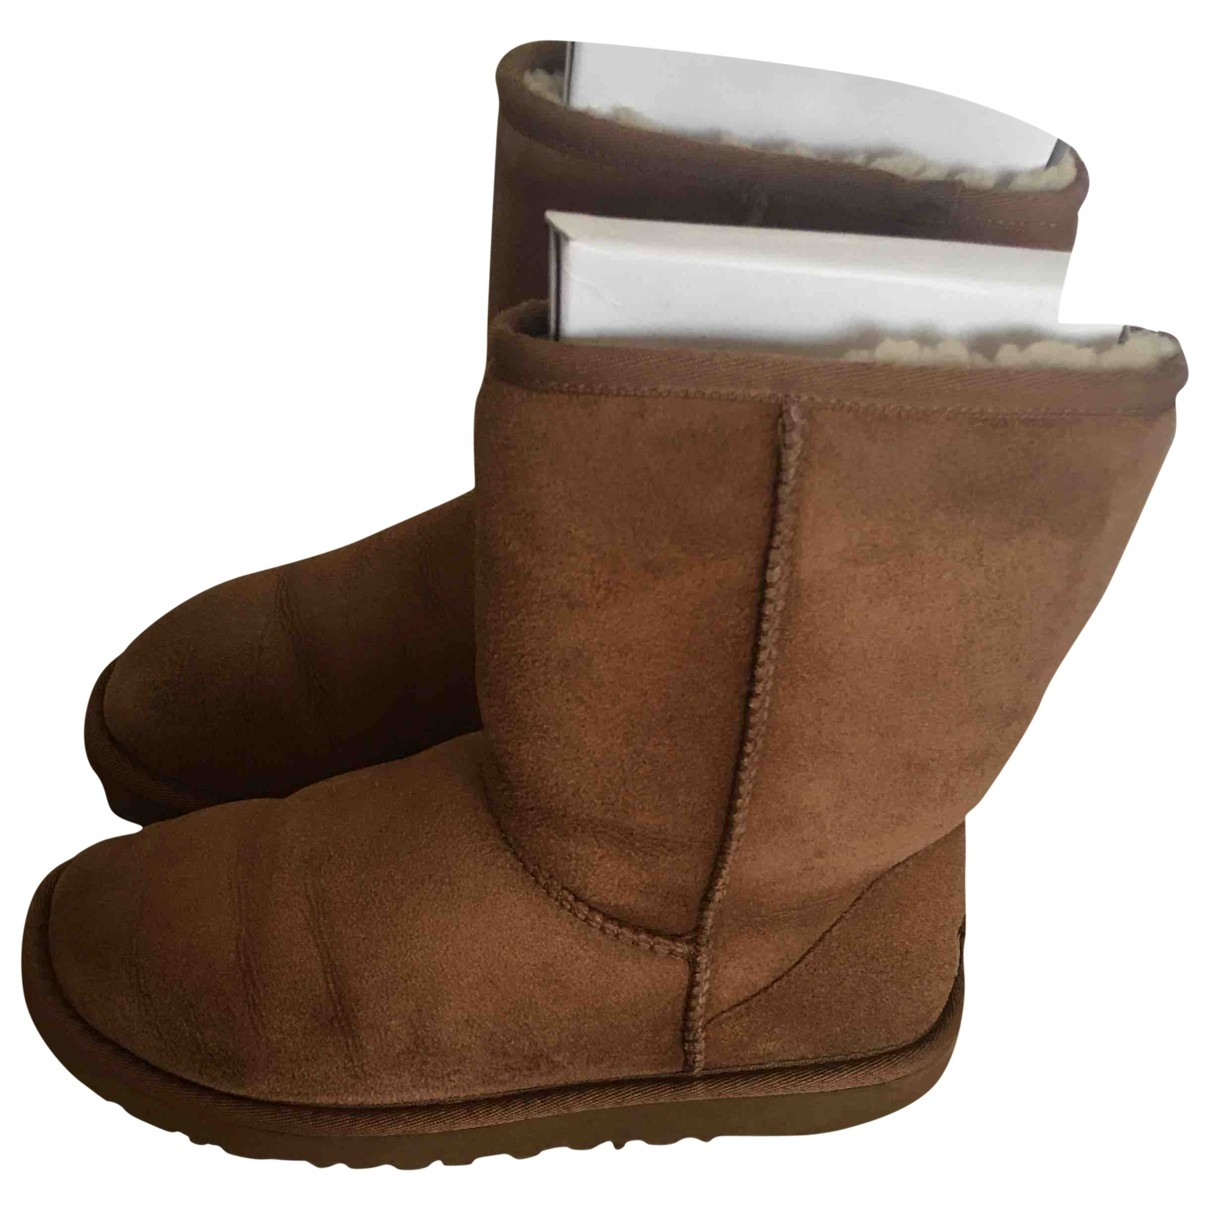 Ugg \N Camel Suede Boots for Women 3.5 UK